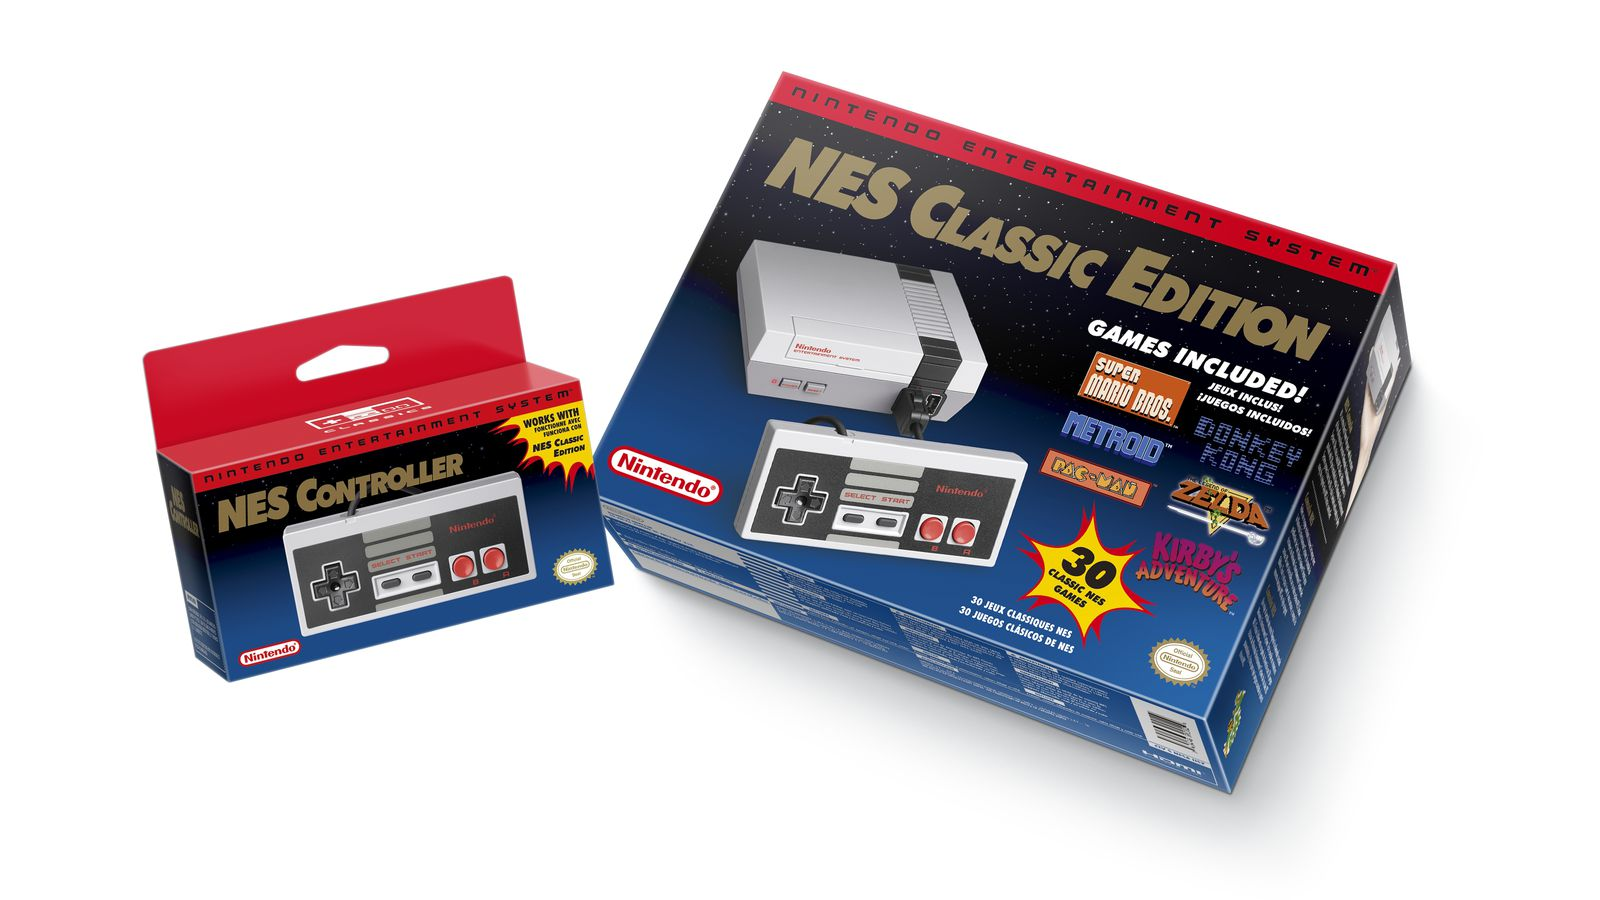 Nintendo's new NES Classic is an excellent deal